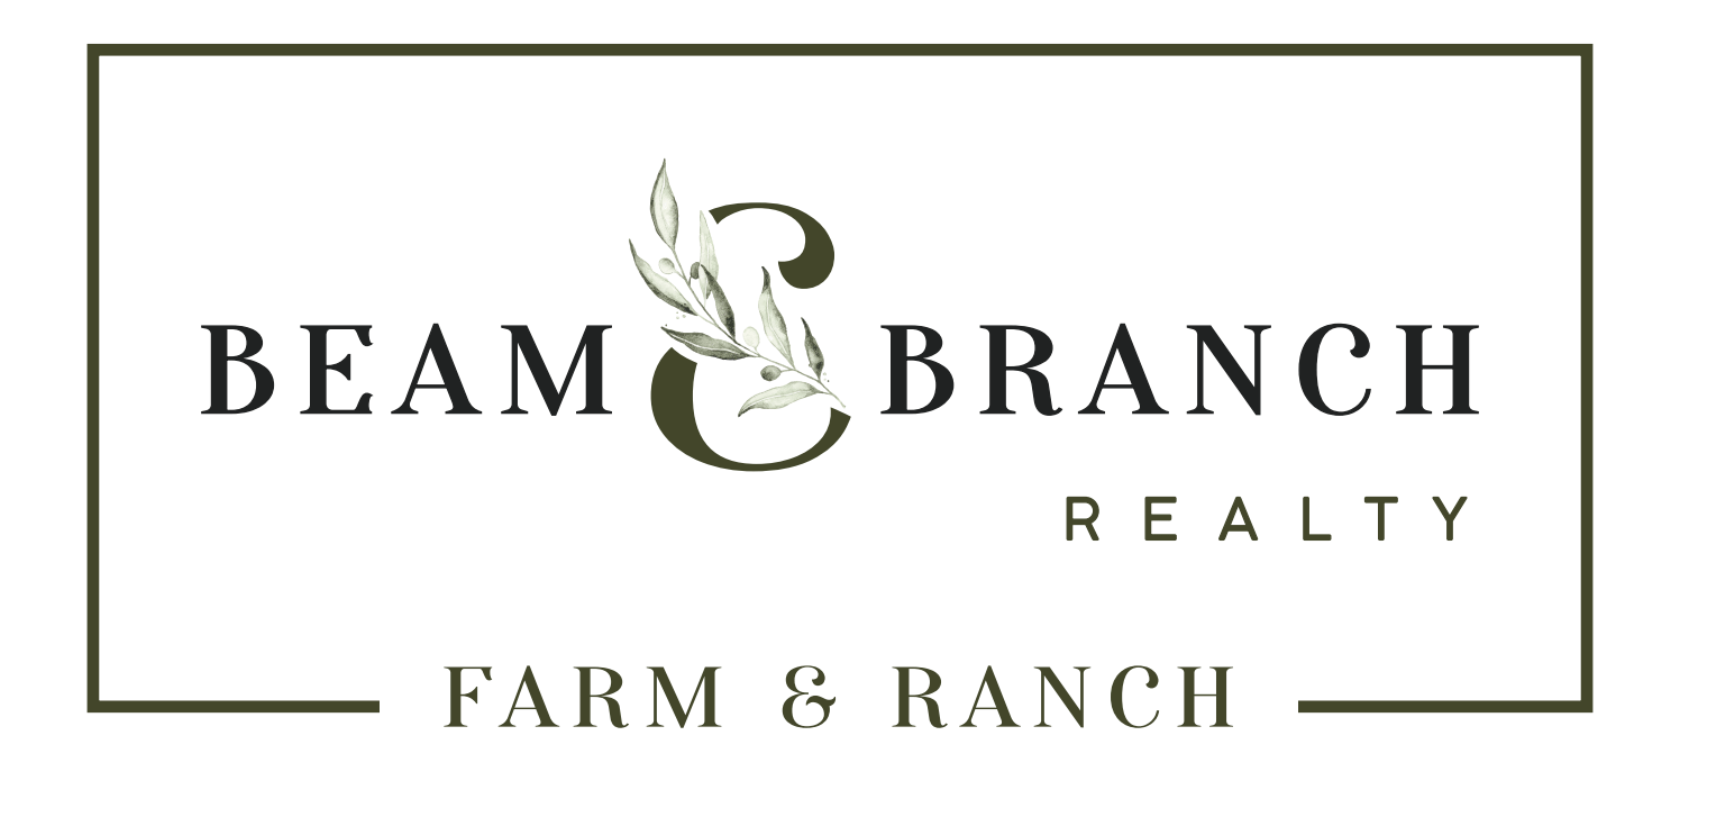 Beam & Branch Farm & Ranch